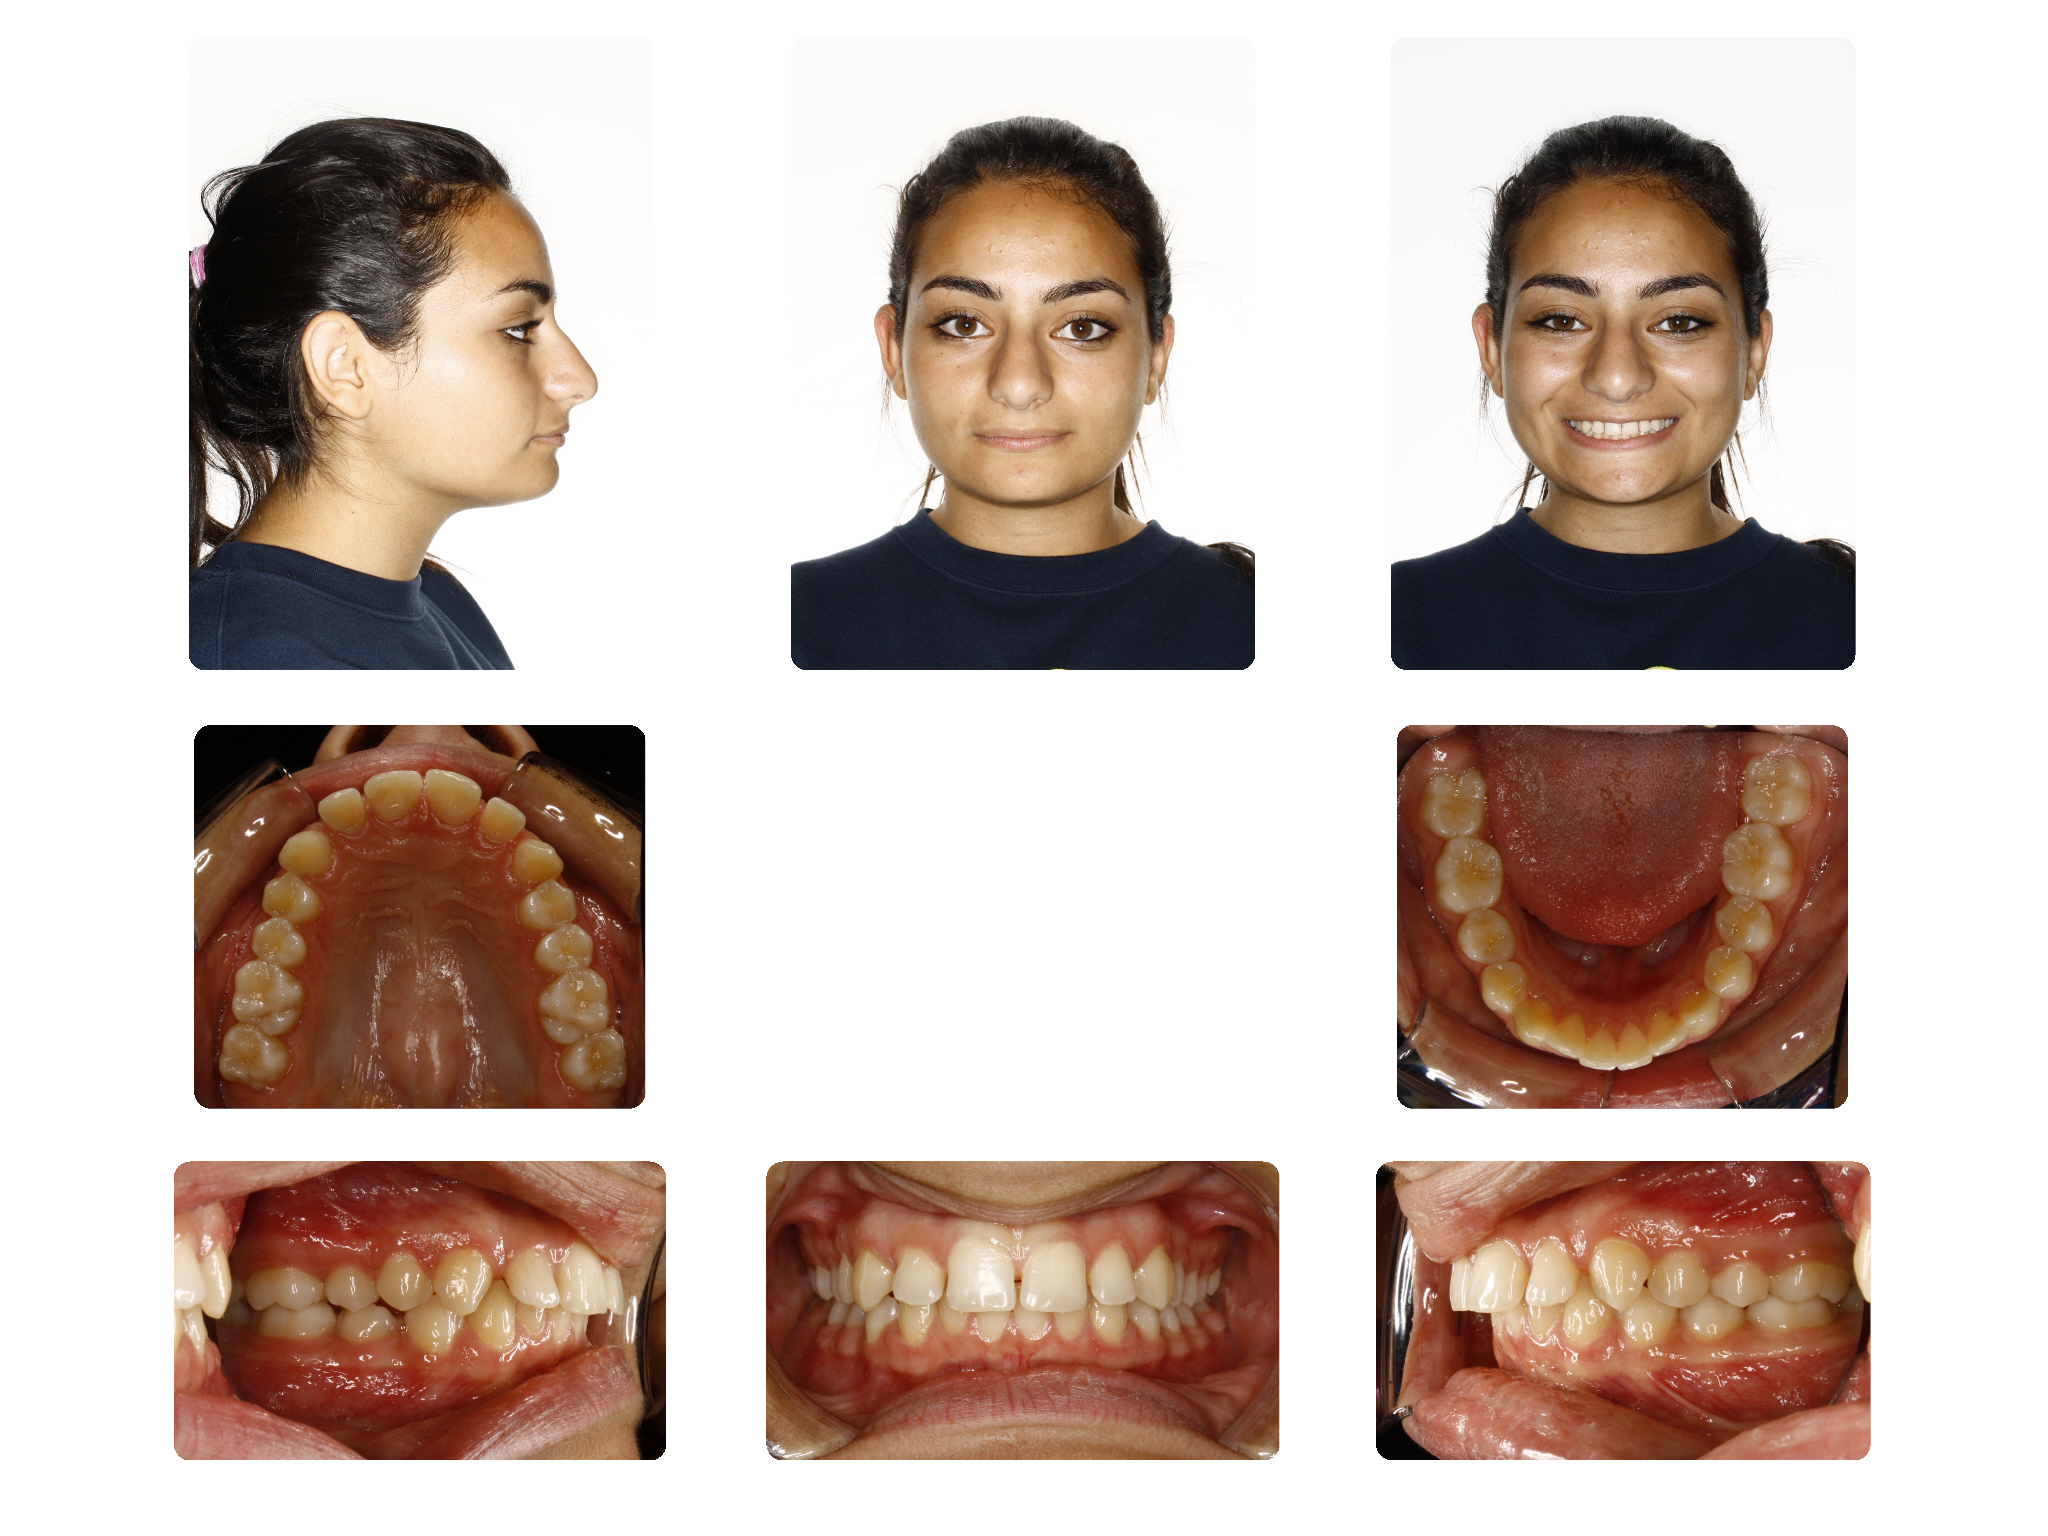 Before   Deep bite case; Patient R.M started 16Yrs. Old